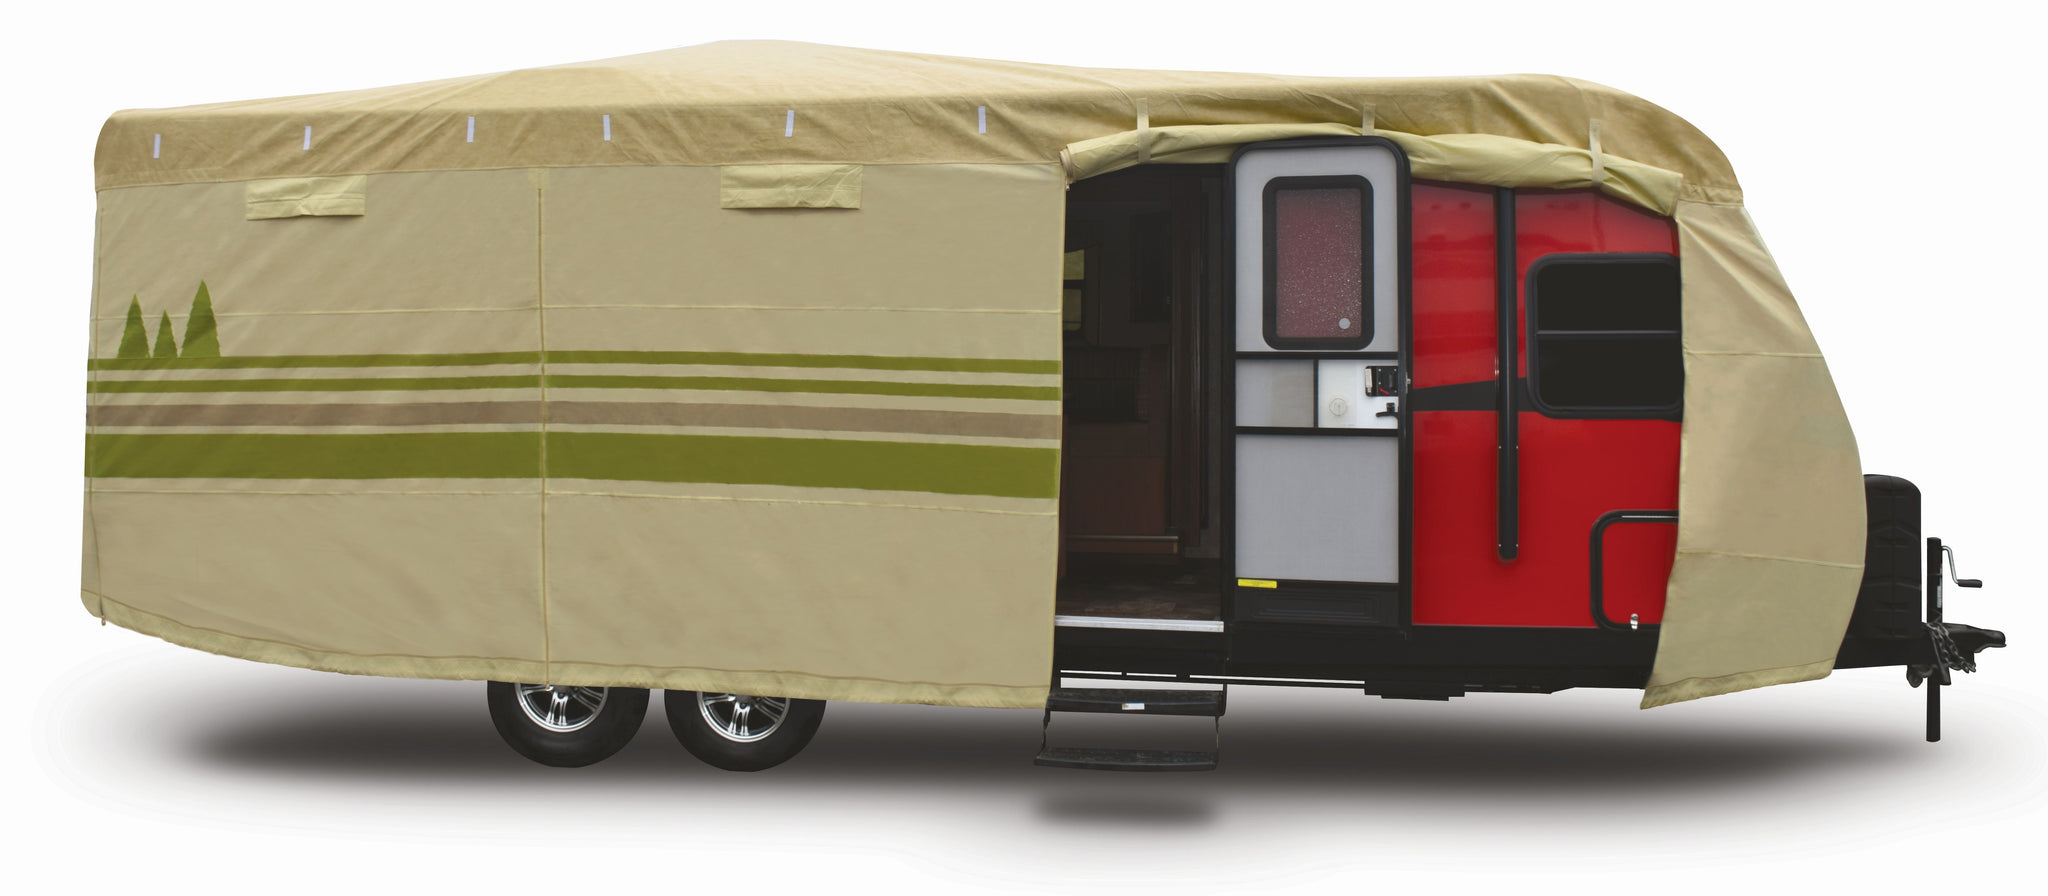 407_Winnebago_Travel_Trailer_Open